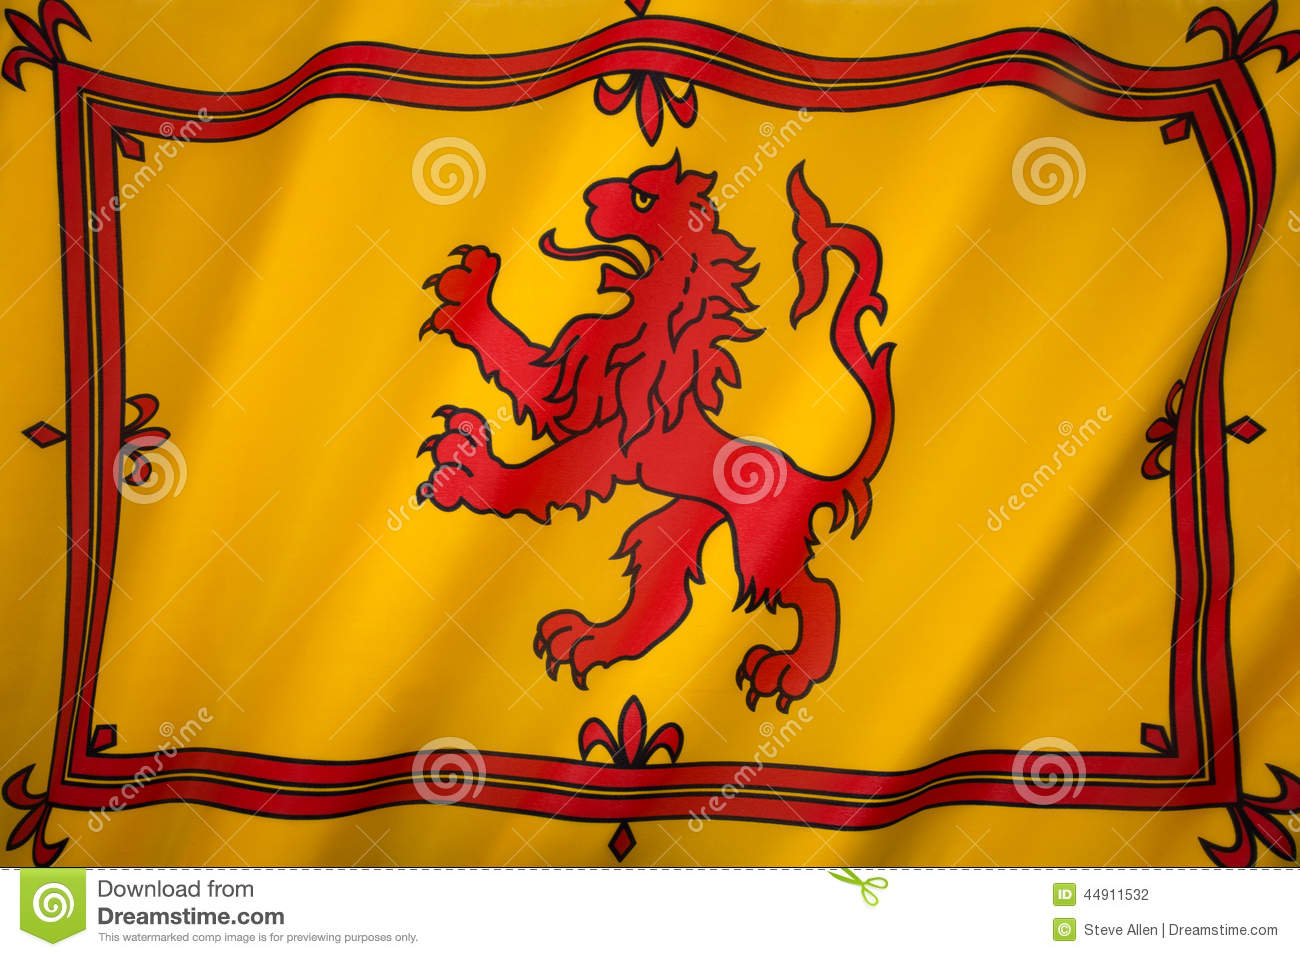 Scotland - Lion Rampant Flag - Scottish Royal Standard